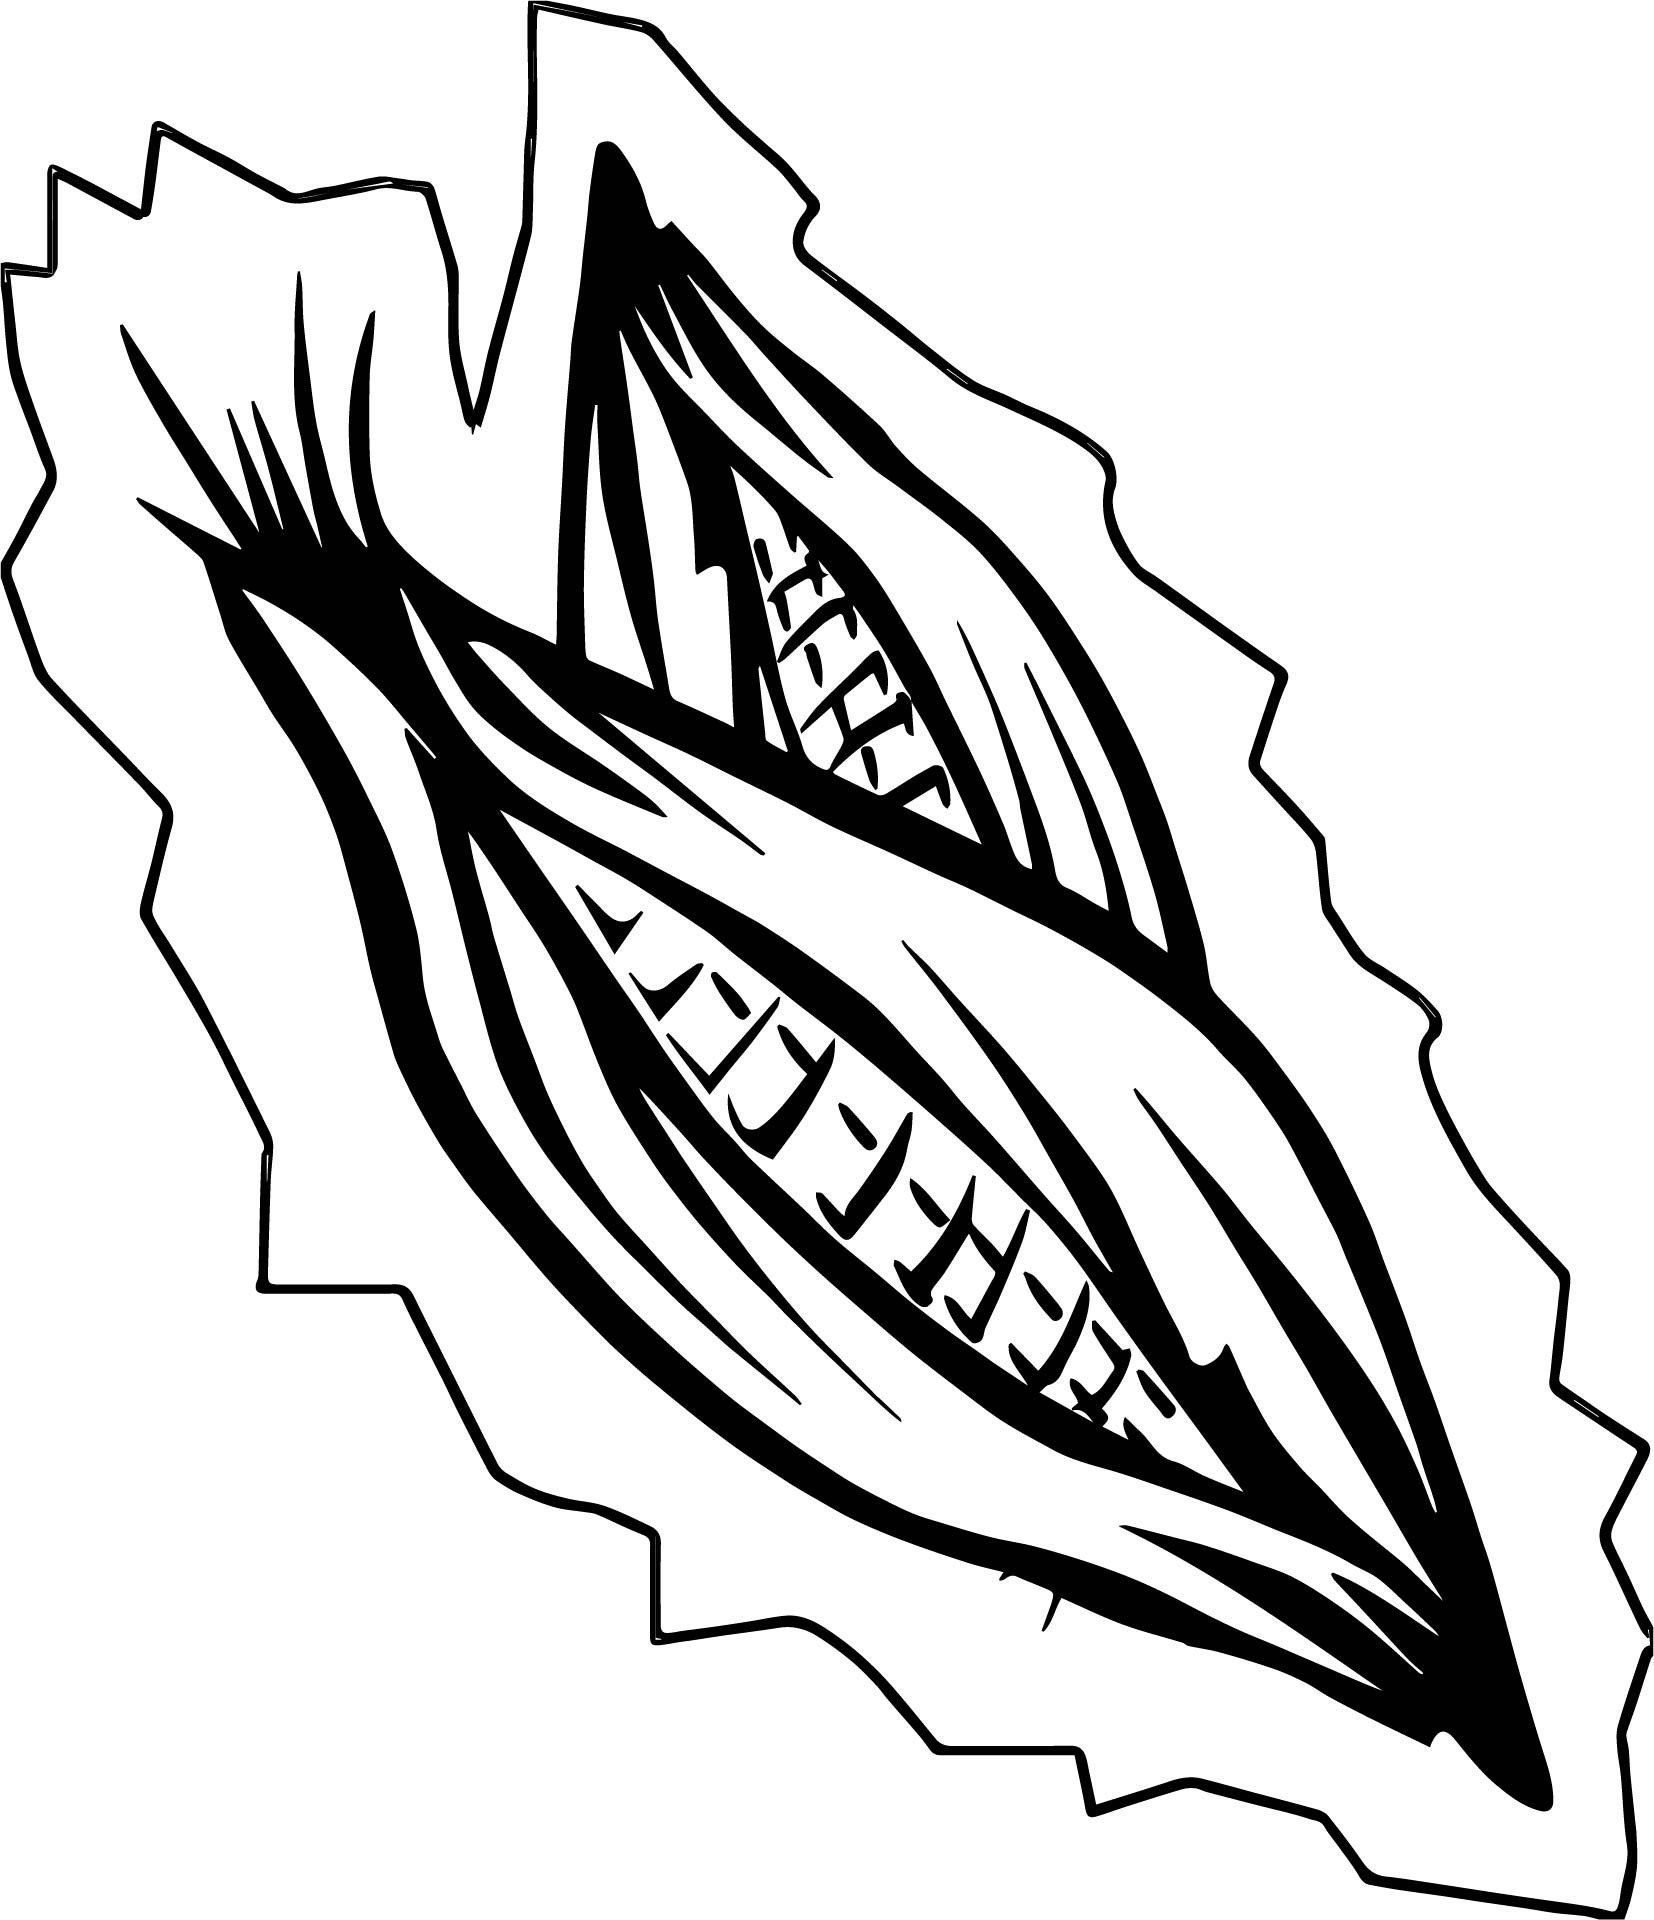 Candy Corn Coloring Page Elegant Ear Corn Coloring Page at